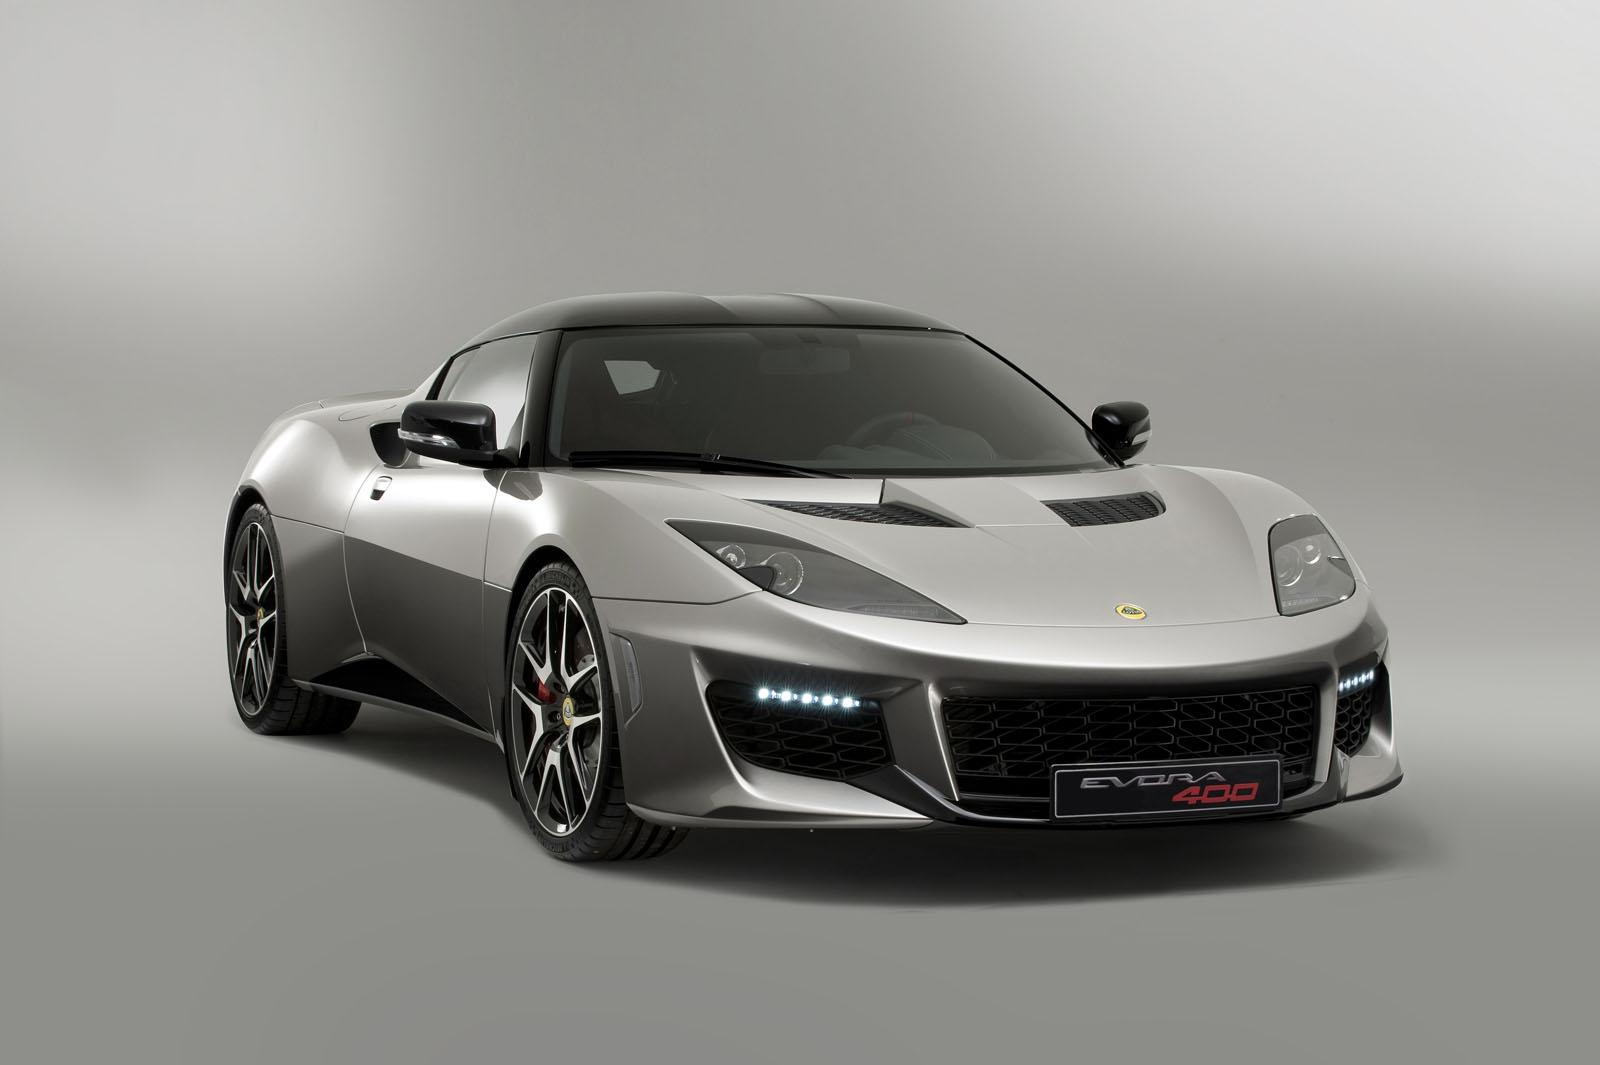 2019 Lotus Ice Vehicle Concept photo - 4